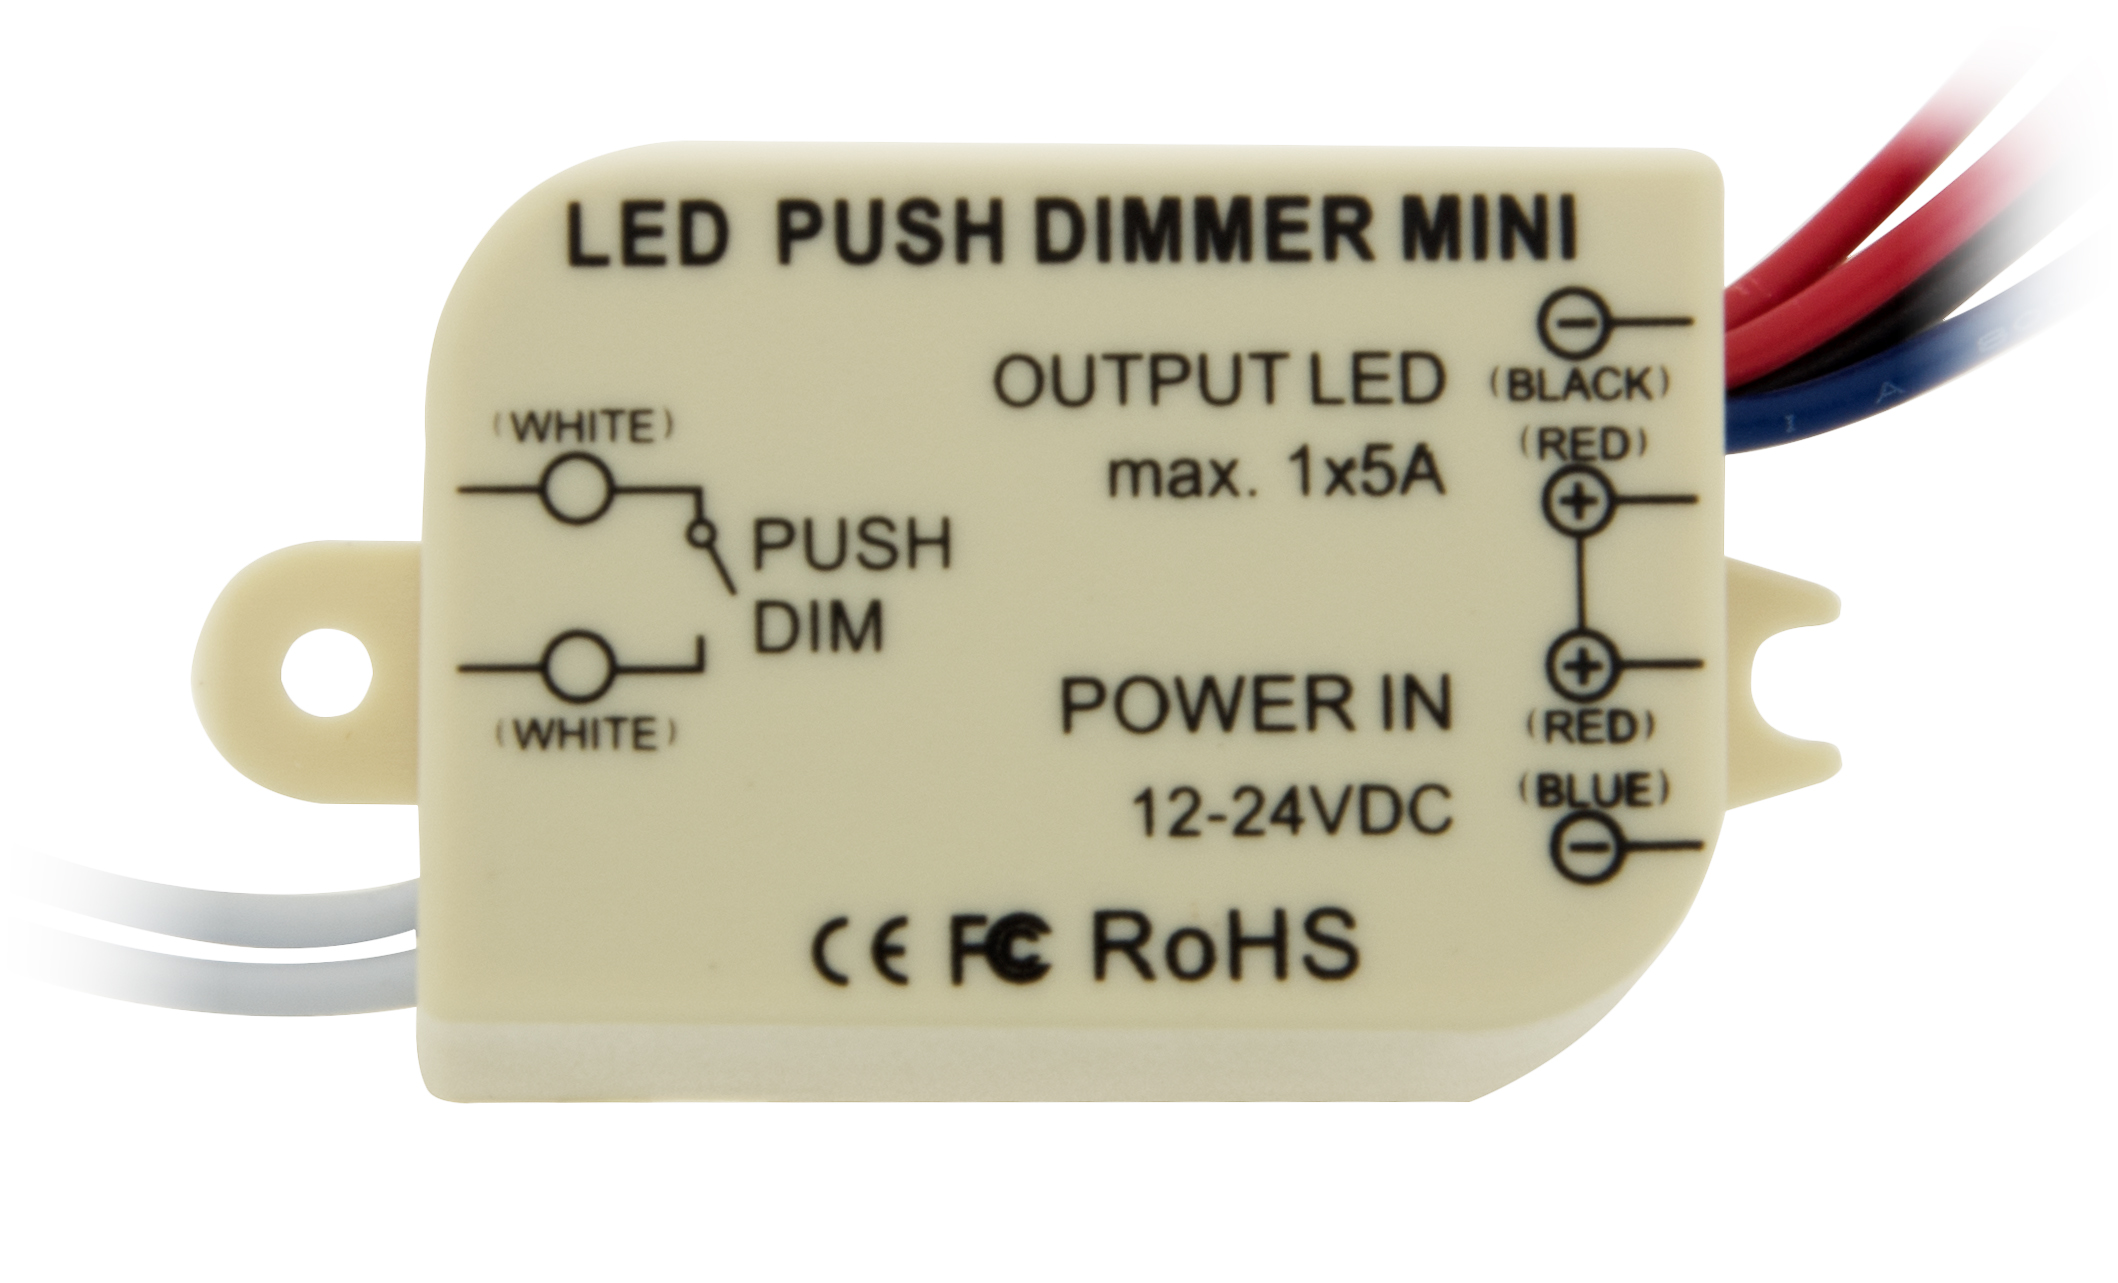 1 Stk LED Push Dimmer Mini Mono LILC011011